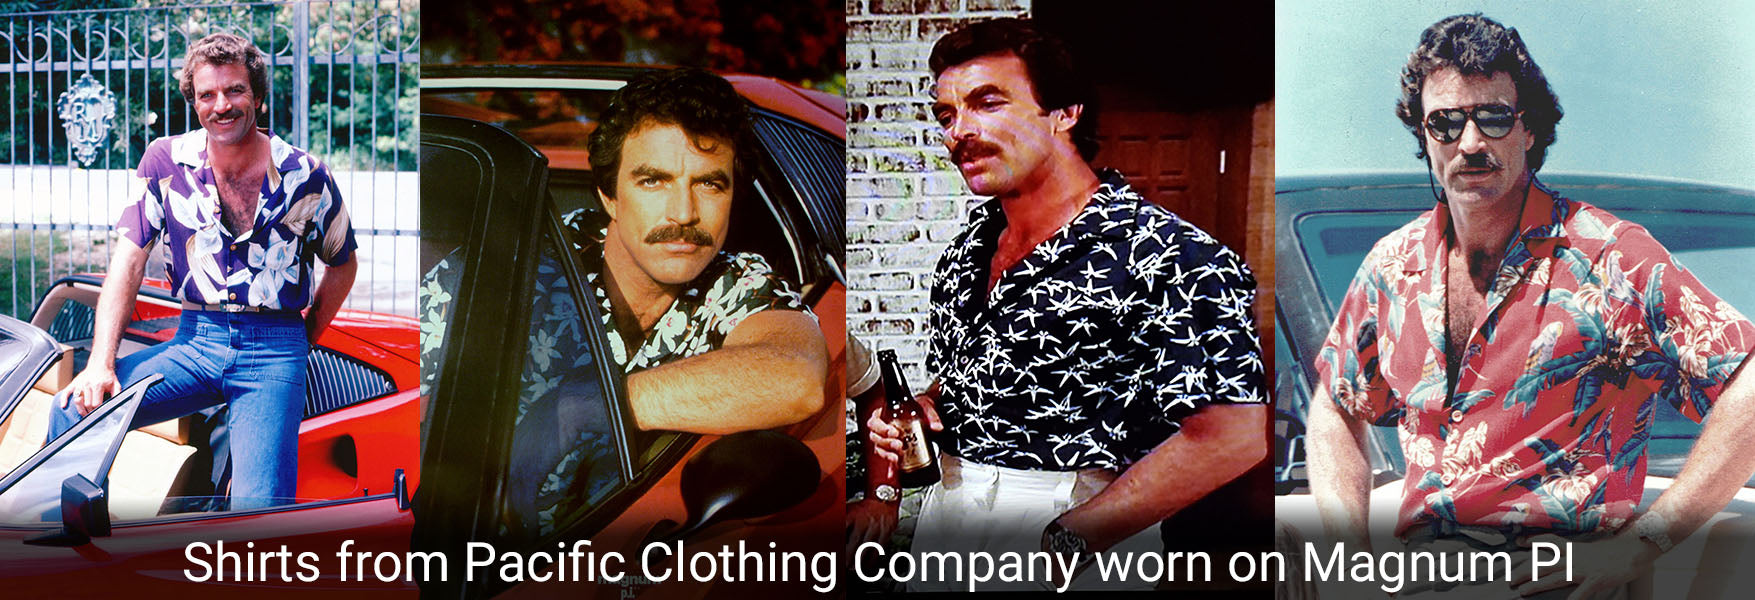 The Collection of Magnum PI Shirts from Pacific Clothing Company Worn on the TV Show